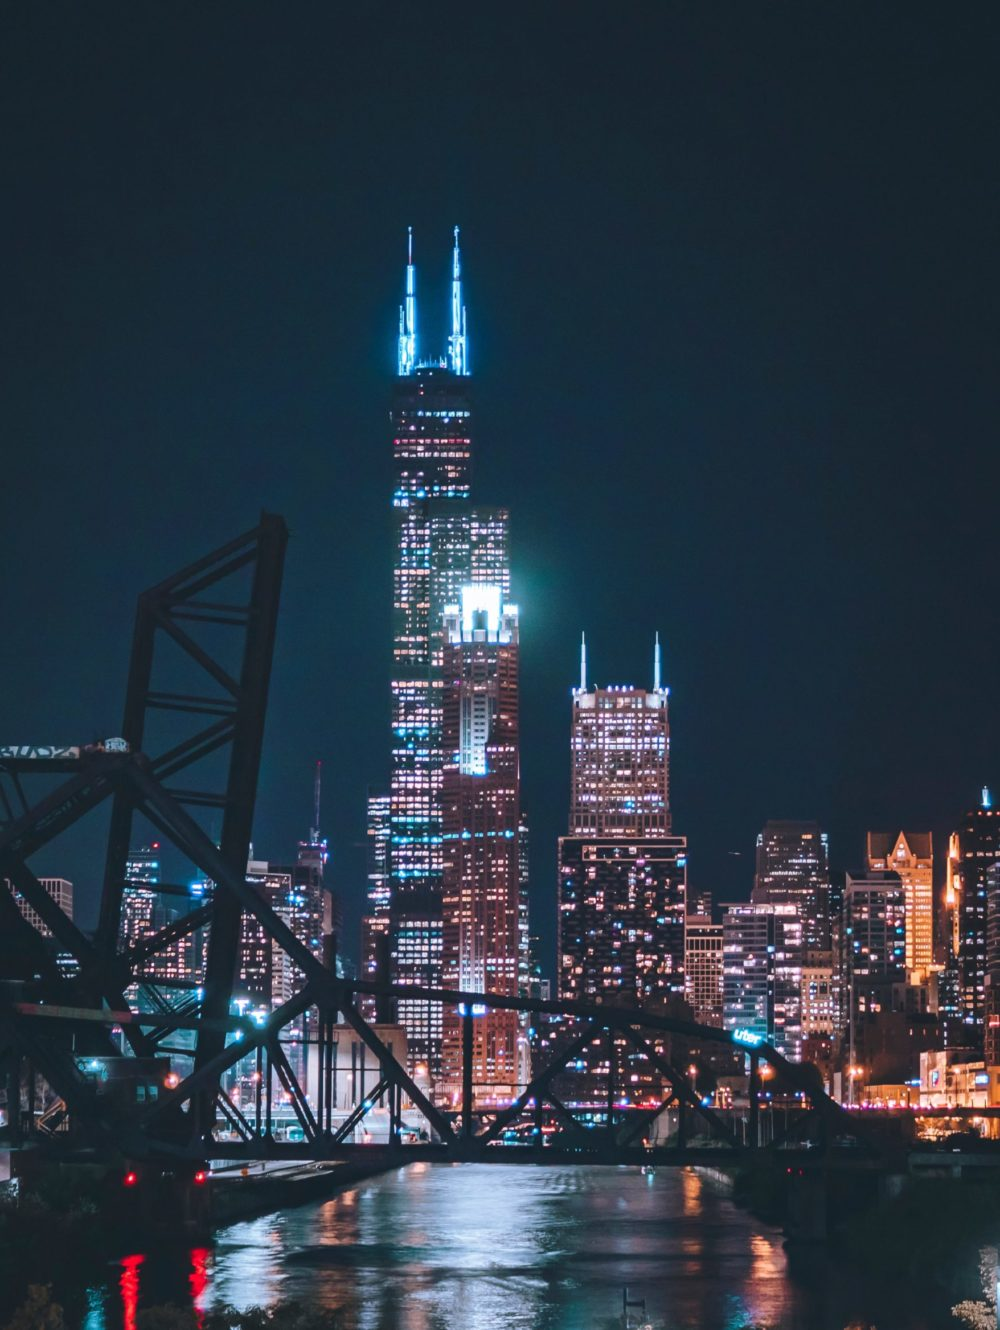 Birds eye view of Willis Tower in Chicago. Night time photo of Chicago skyline with raised bridge in the forefront.